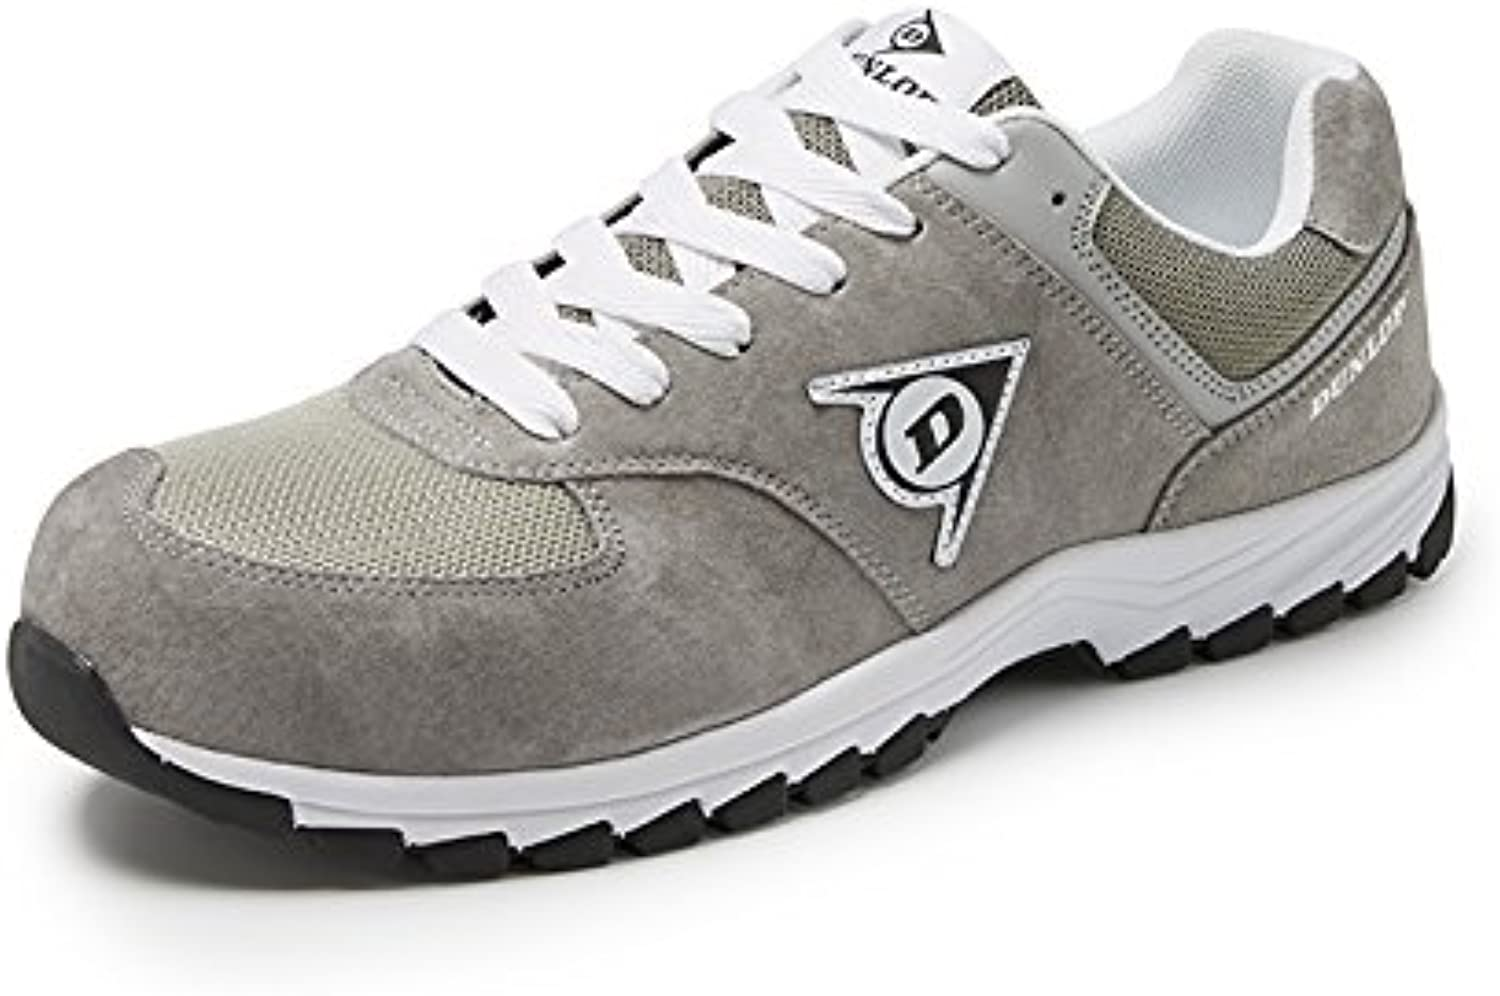 Dunlop Flying Arrow - Zapatos (39) color gris